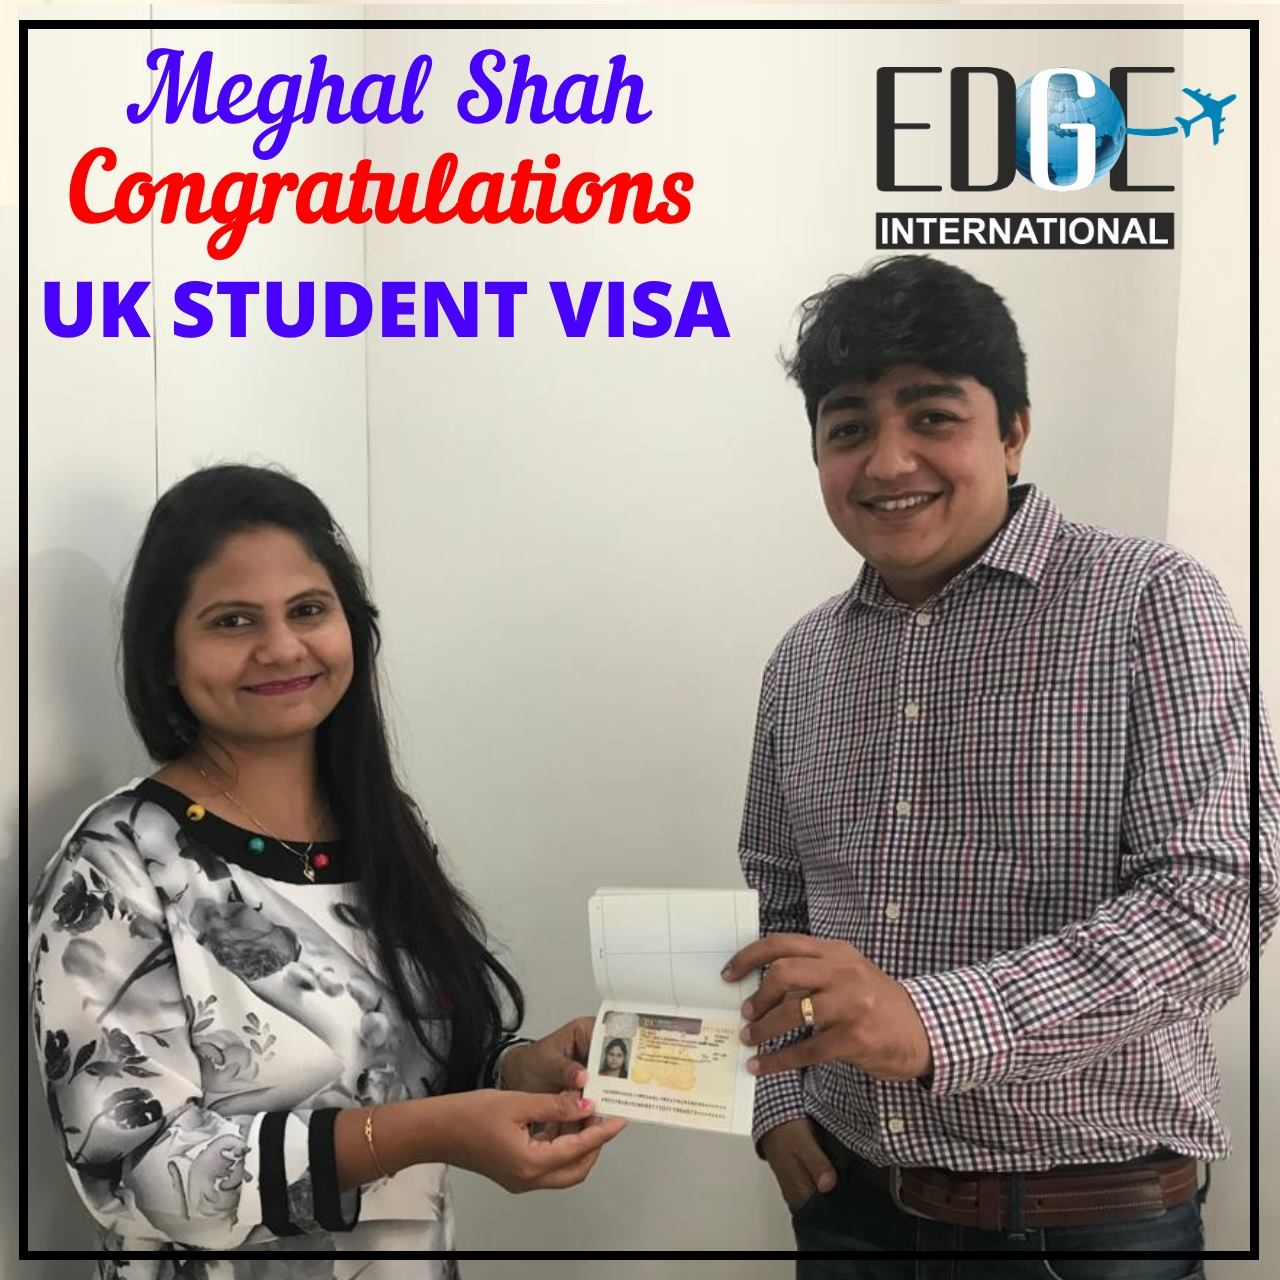 Congratulation Meghal Shah for getting UK student visa for